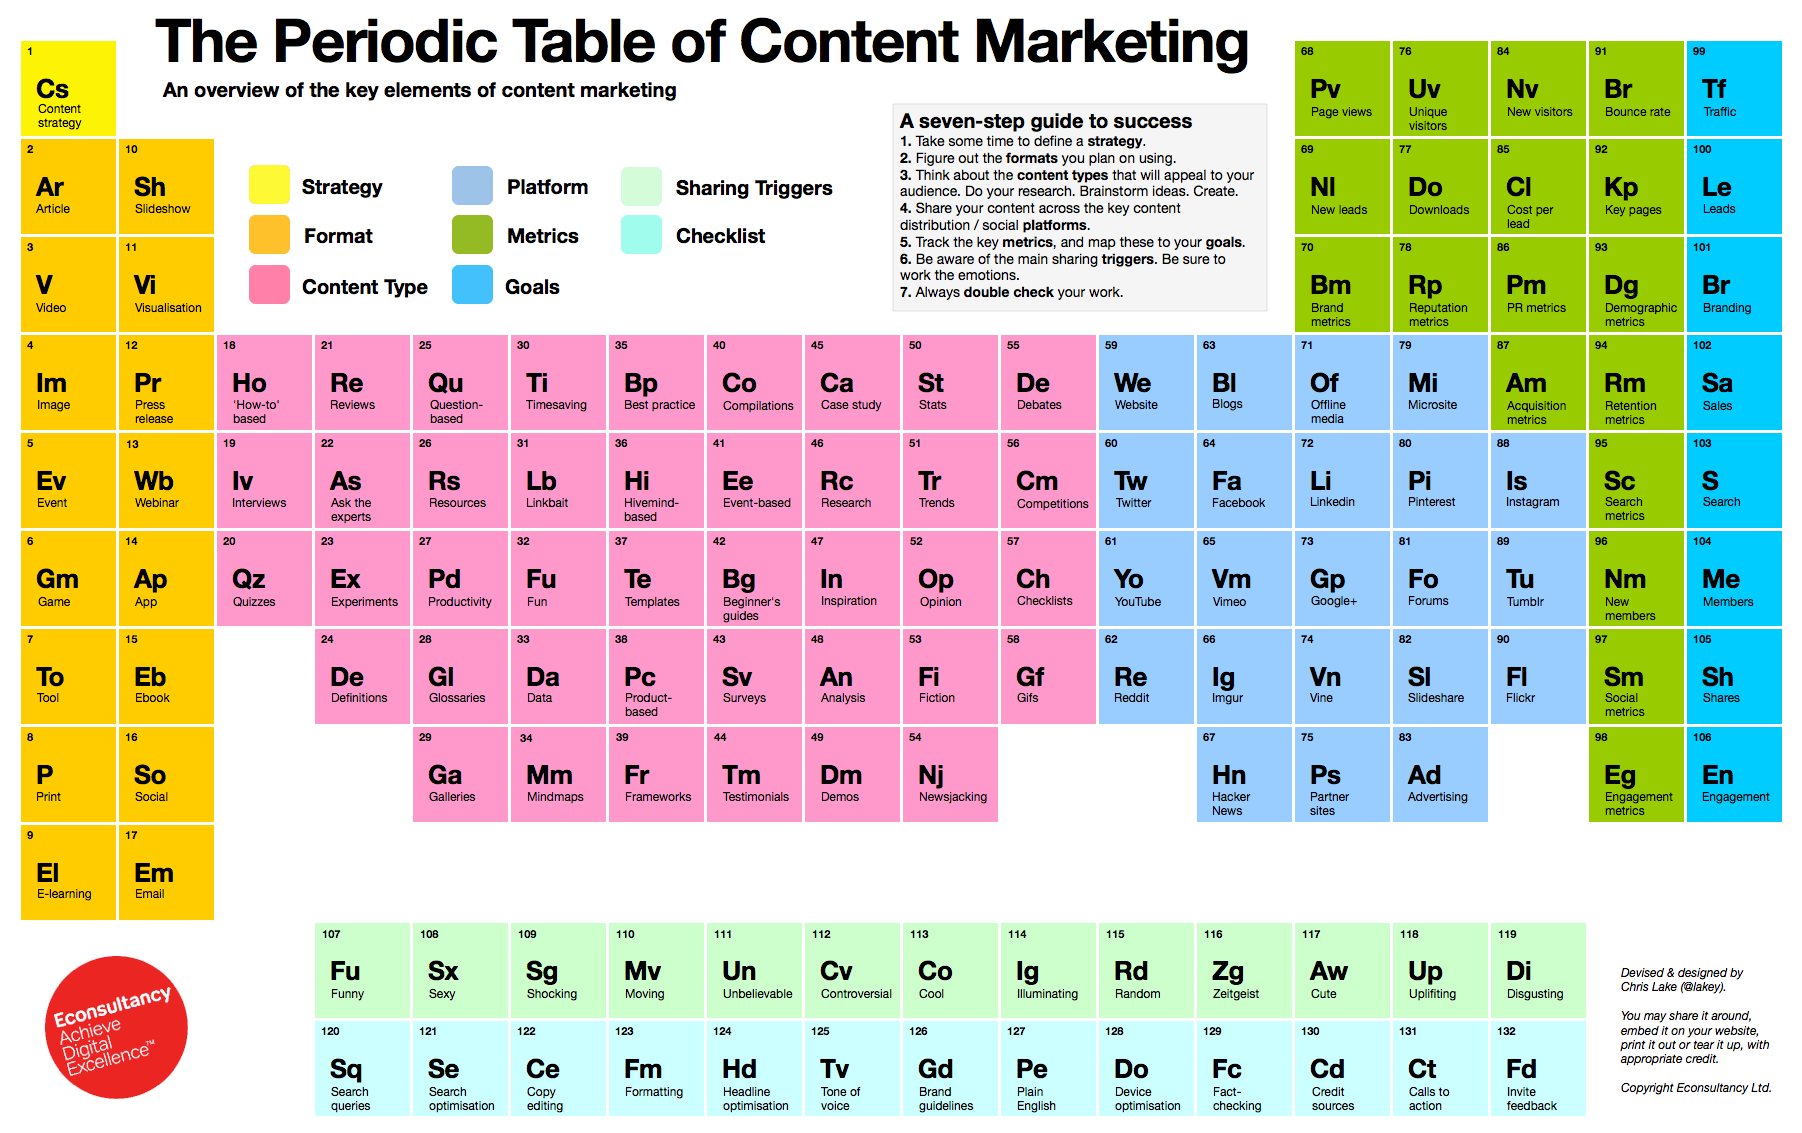 The Periodic Table of Content Marketing | Martech Zone